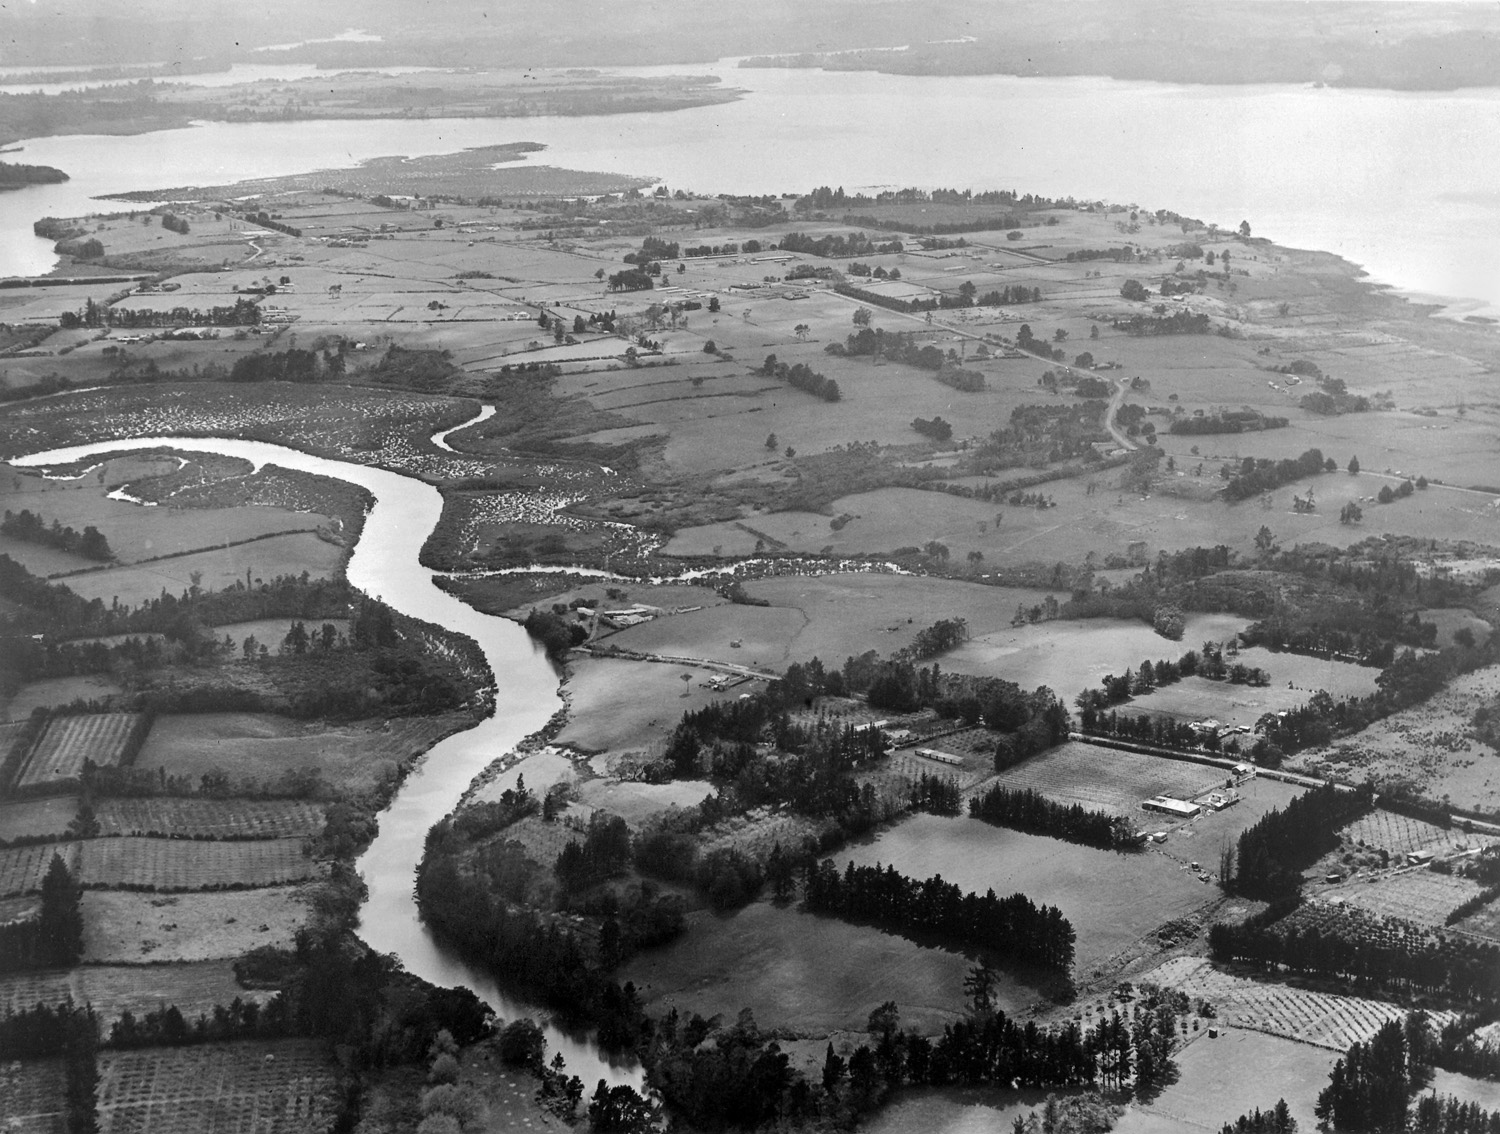 Aerial view looking north over Te Atatu, showing a difference in land use between the southern and northern sections of the Peninsula, 24 September 1948. Whites Aviation Ltd, Alexander Turnbull Library, Wellington. (WA-15895a-F)